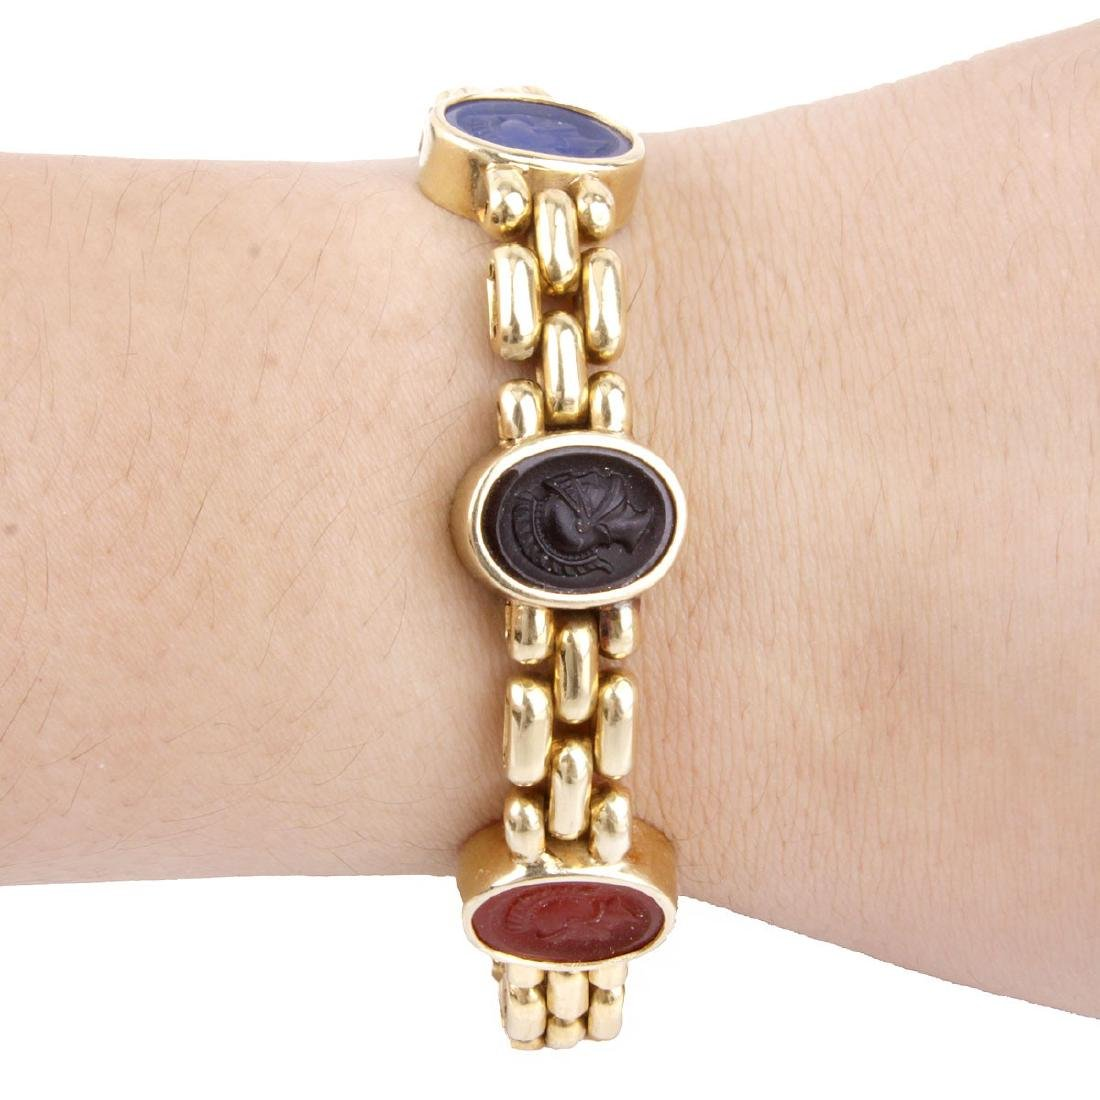 Vintage 18K Gold and Intaglio Bracelet - 6